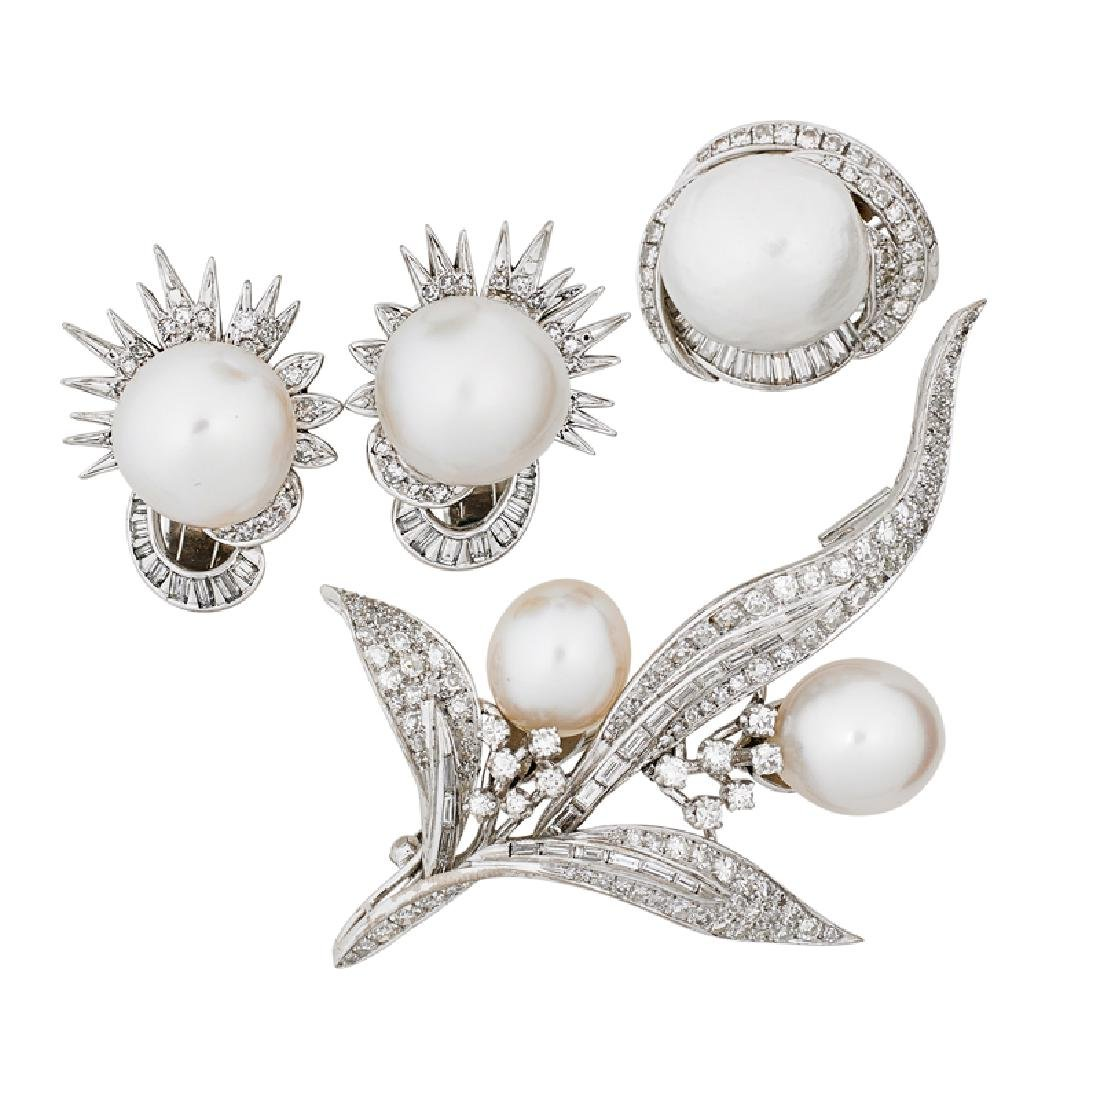 SOUTH SEA PEARL & DIAMOND WHITE GOLD JEWELRY